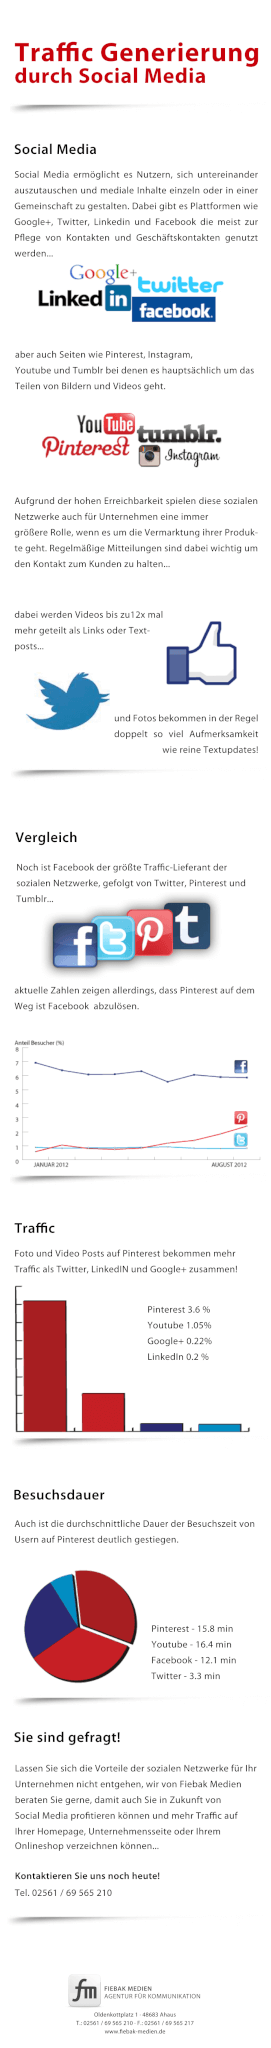 Infografik Social Media Traffic Generierung durch Social Media